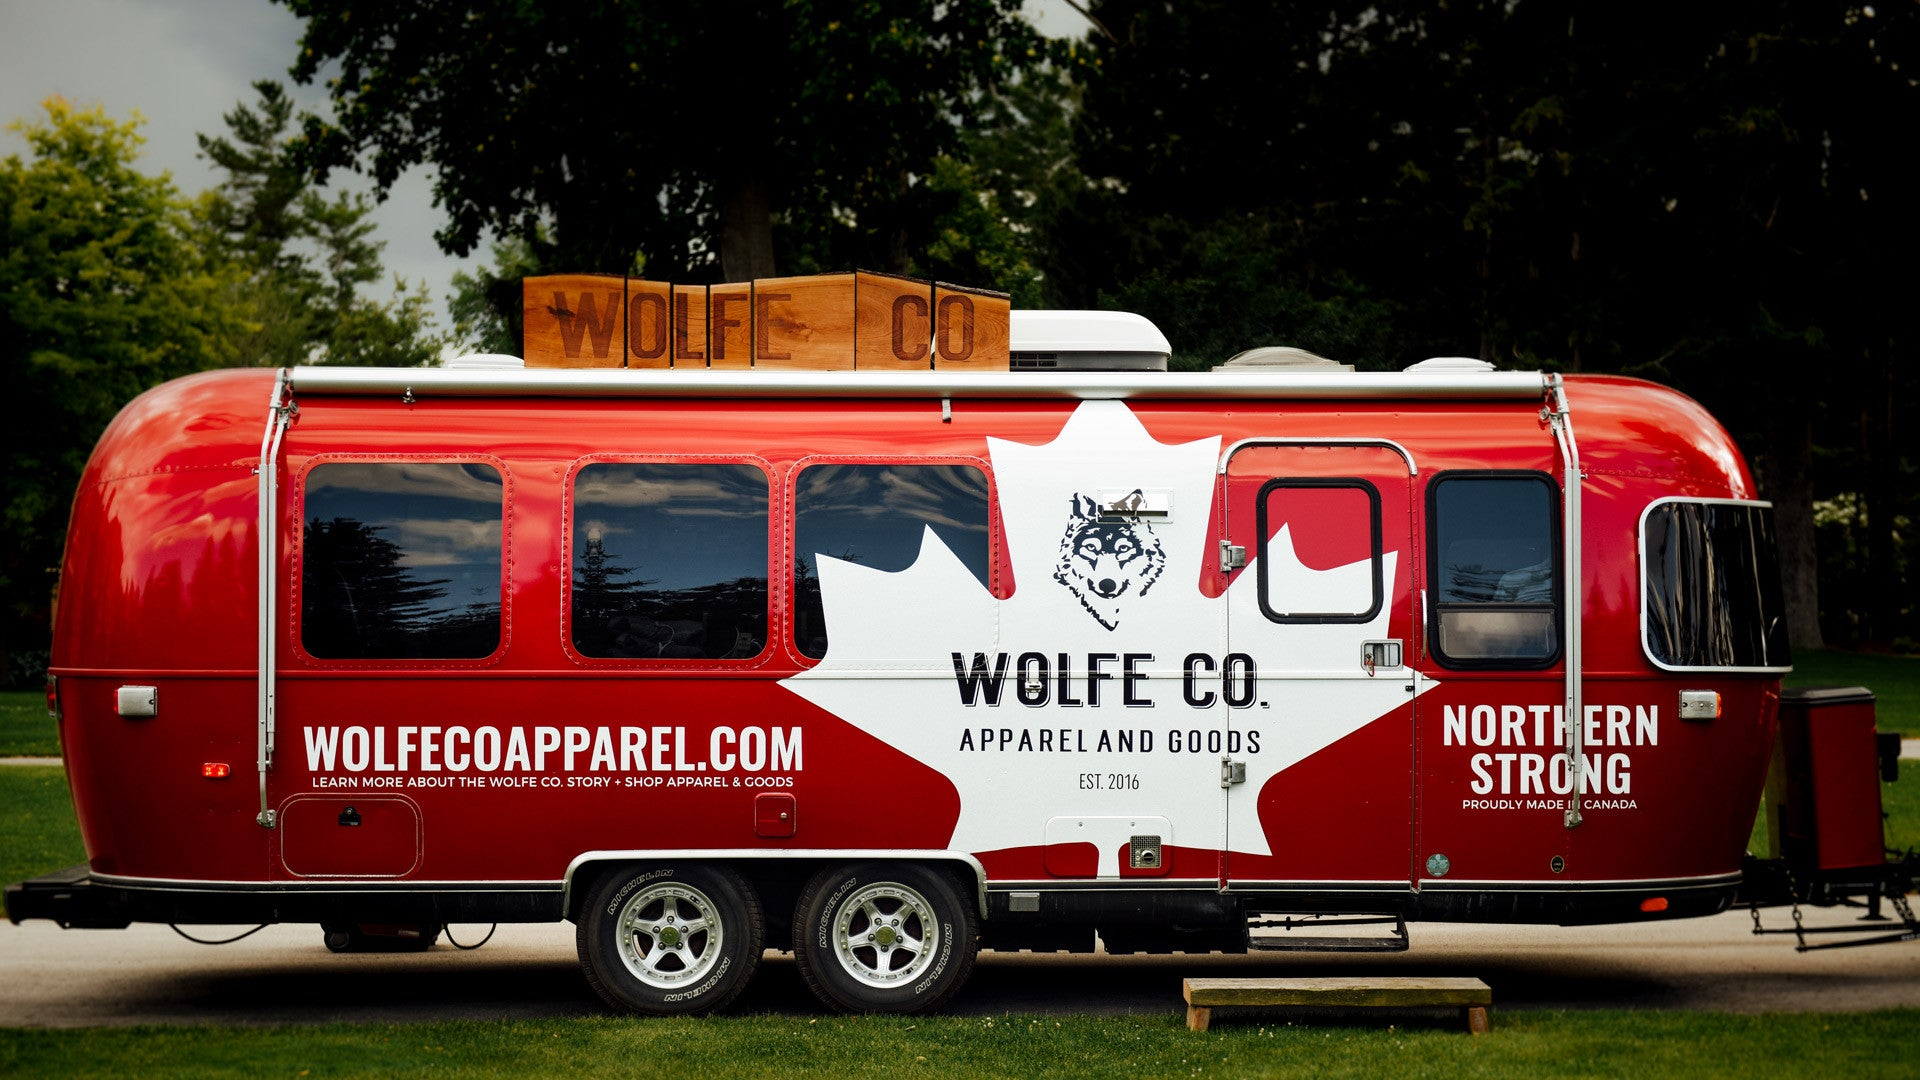 Wolfe Co. Apparel Mobile Pop Up Store Airstream